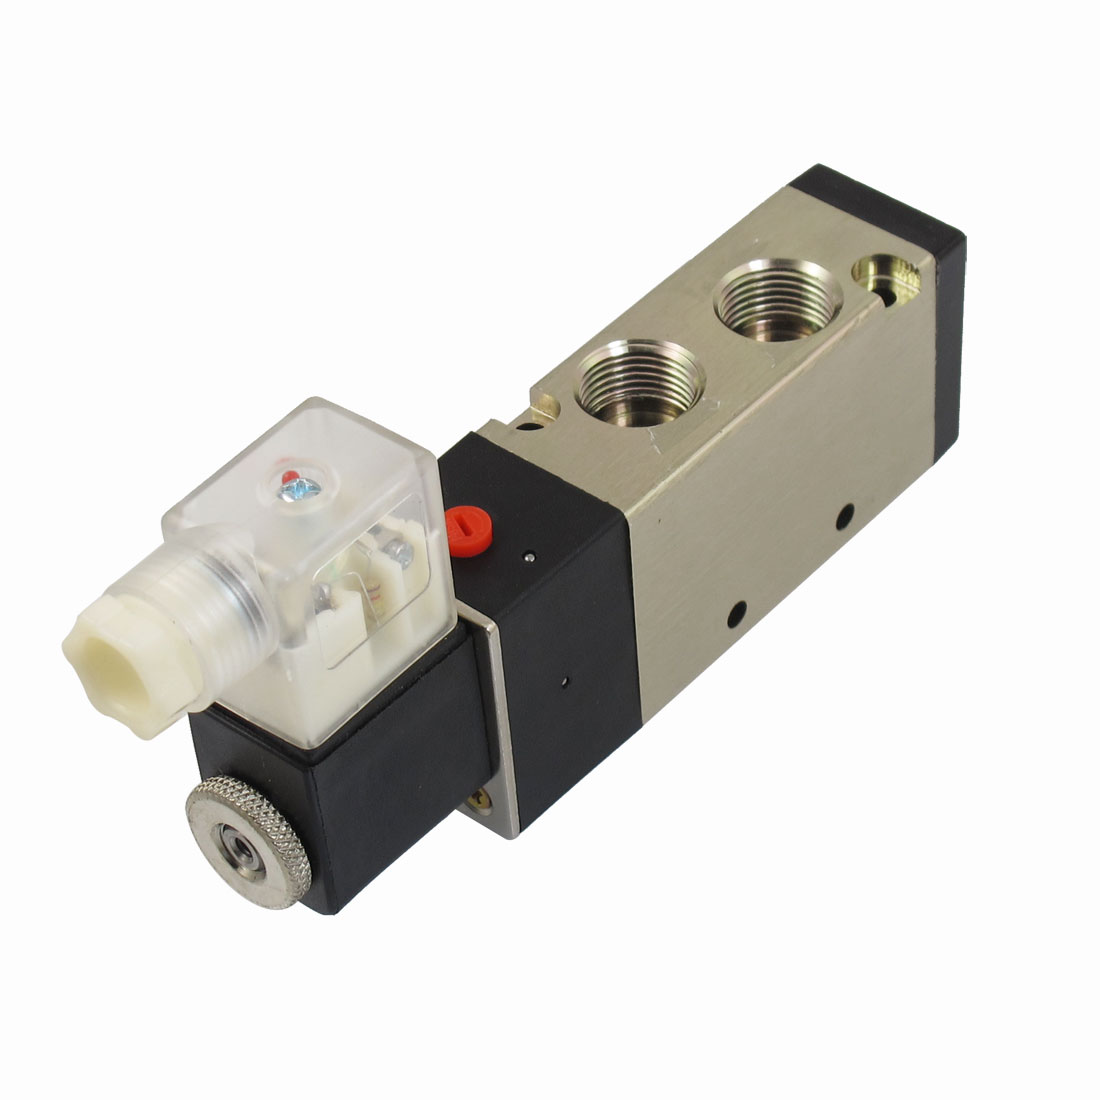 "AC 110V 4.5VA 25mA G1/4"" Exhaust 2 Position 5 Way Pneumatic Electromagnetic Solenoid Valve"